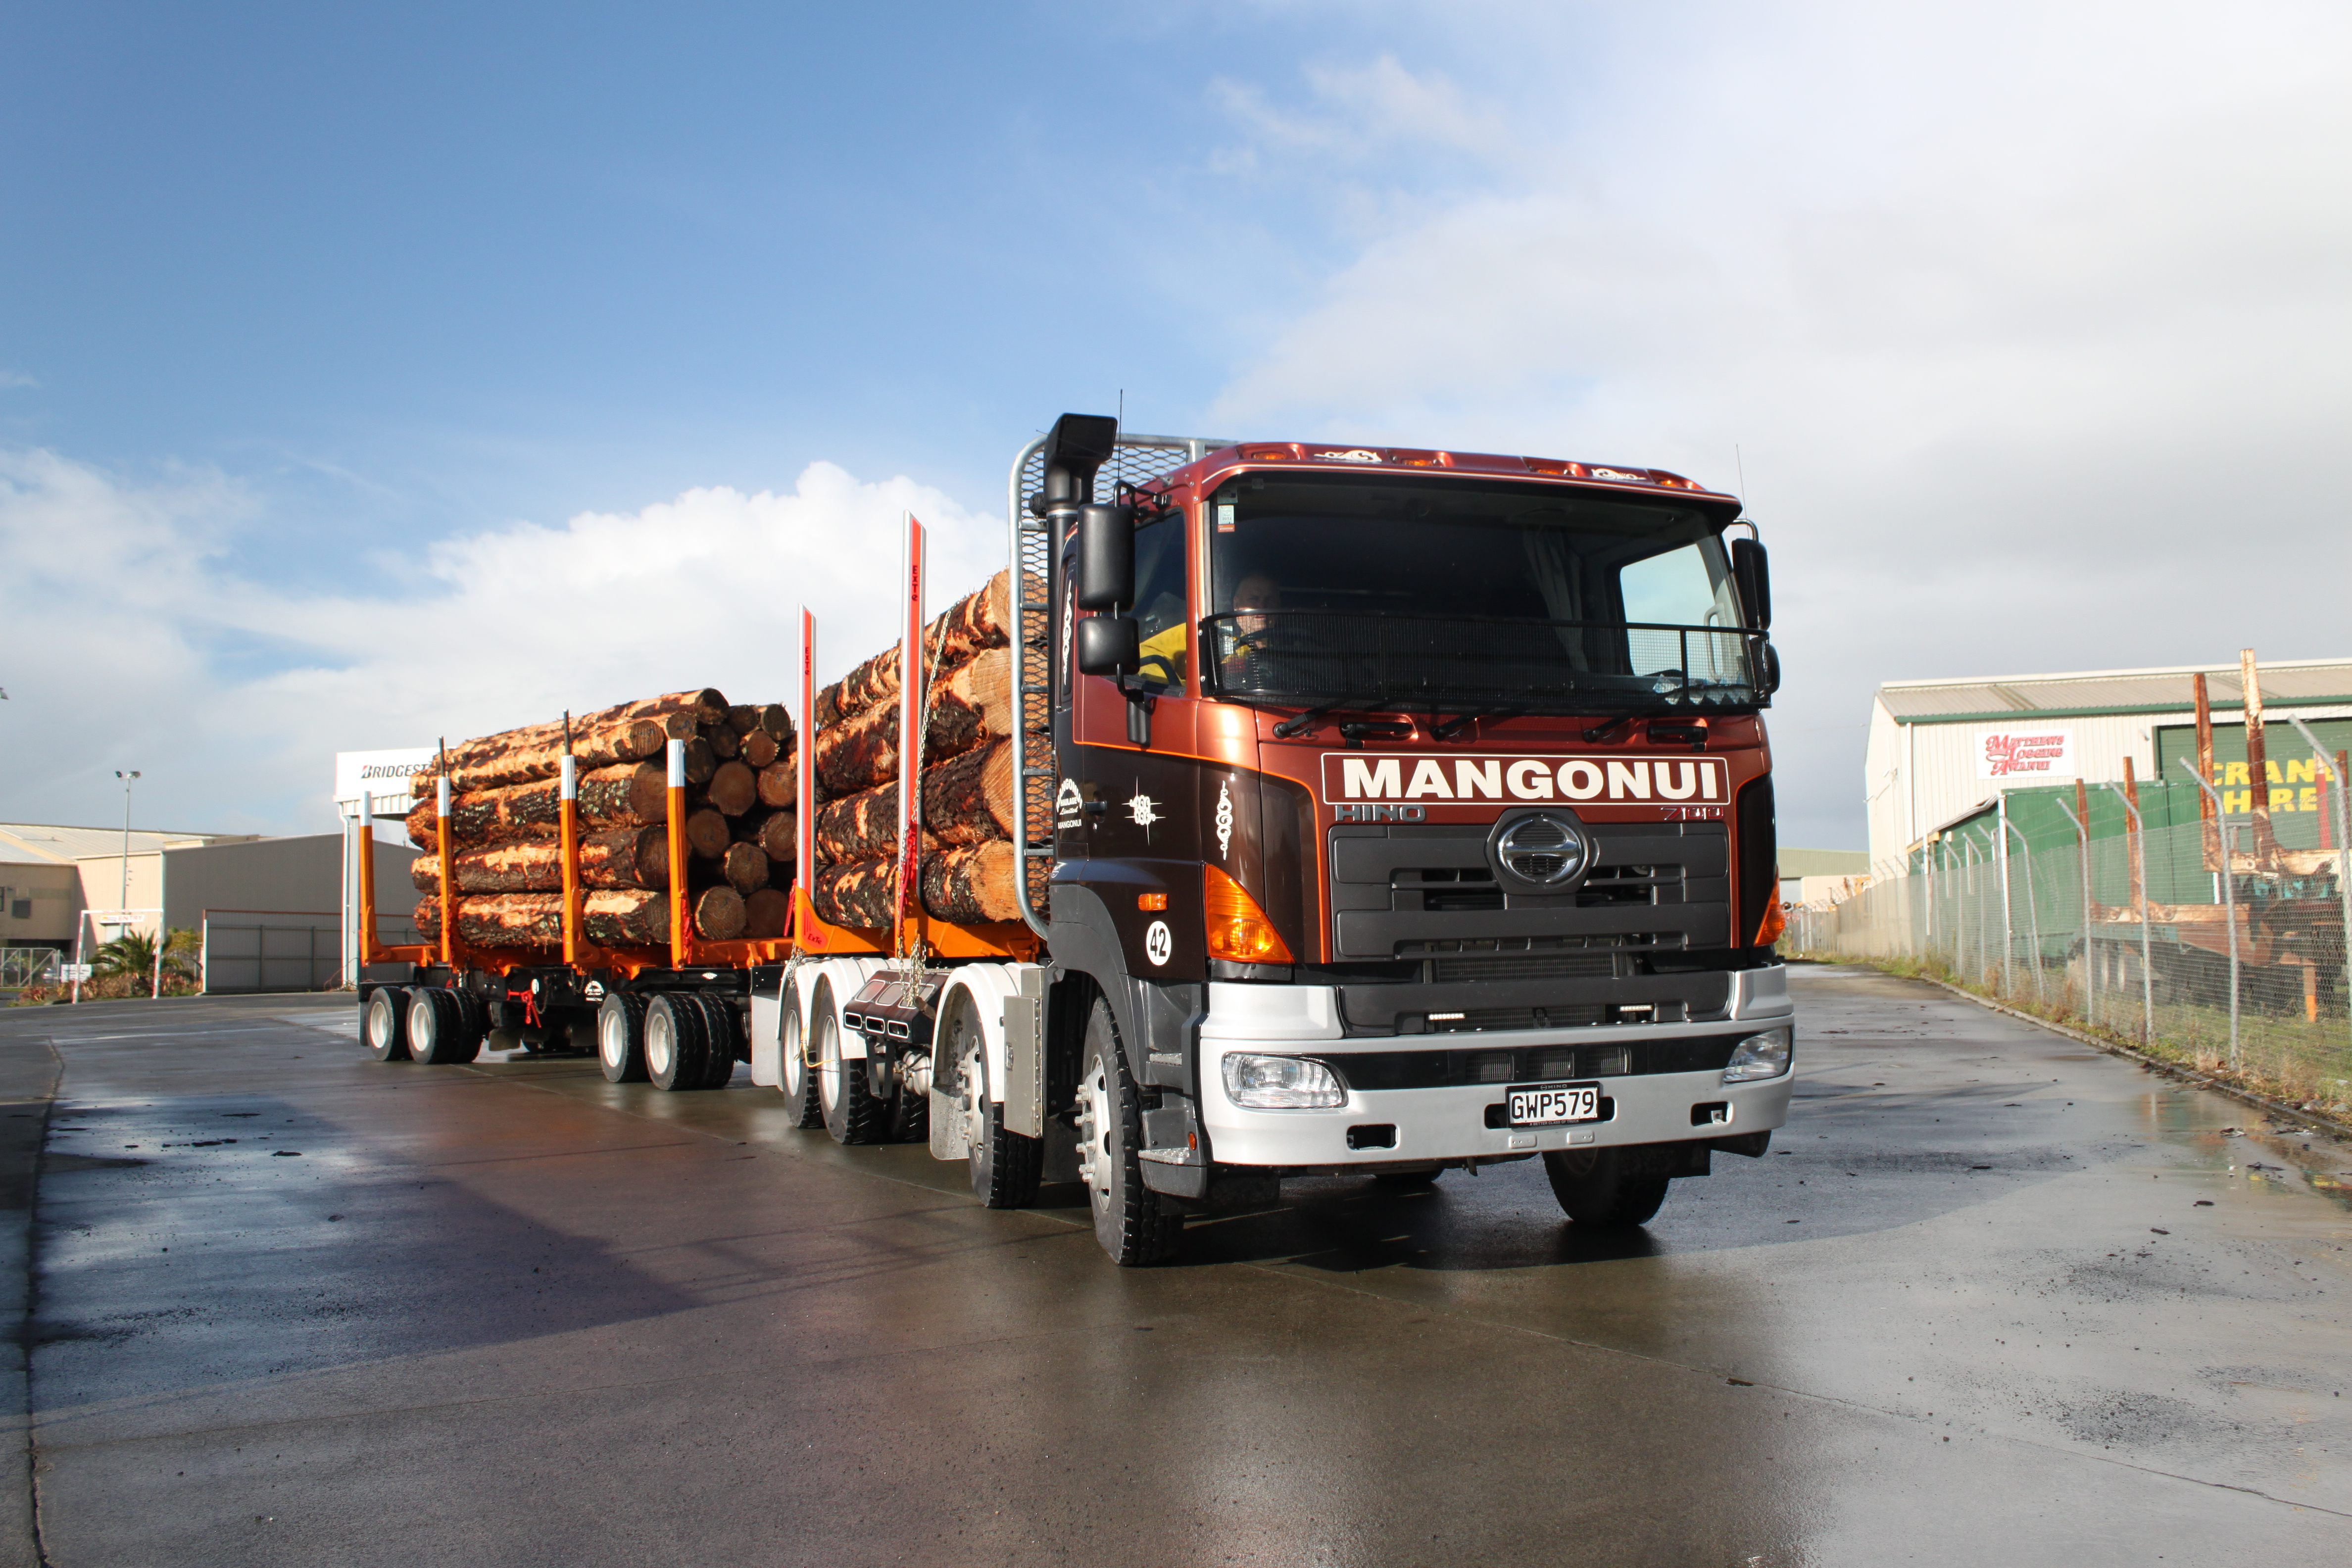 Mangonui Haulage Ltd - 700 Series FY1 8x4 6-Rod 450hp